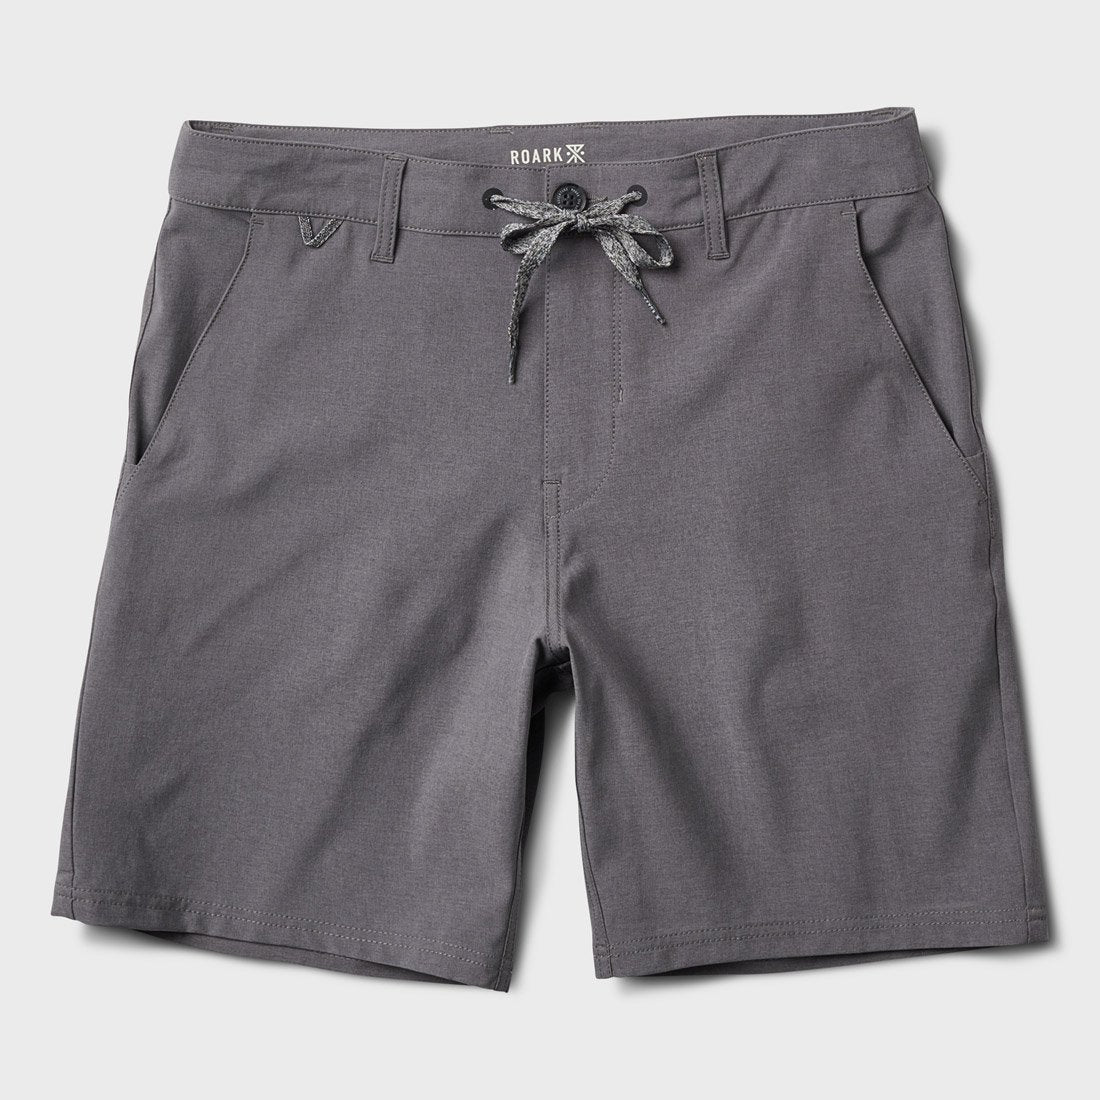 Roark Explorer Short Charcoal